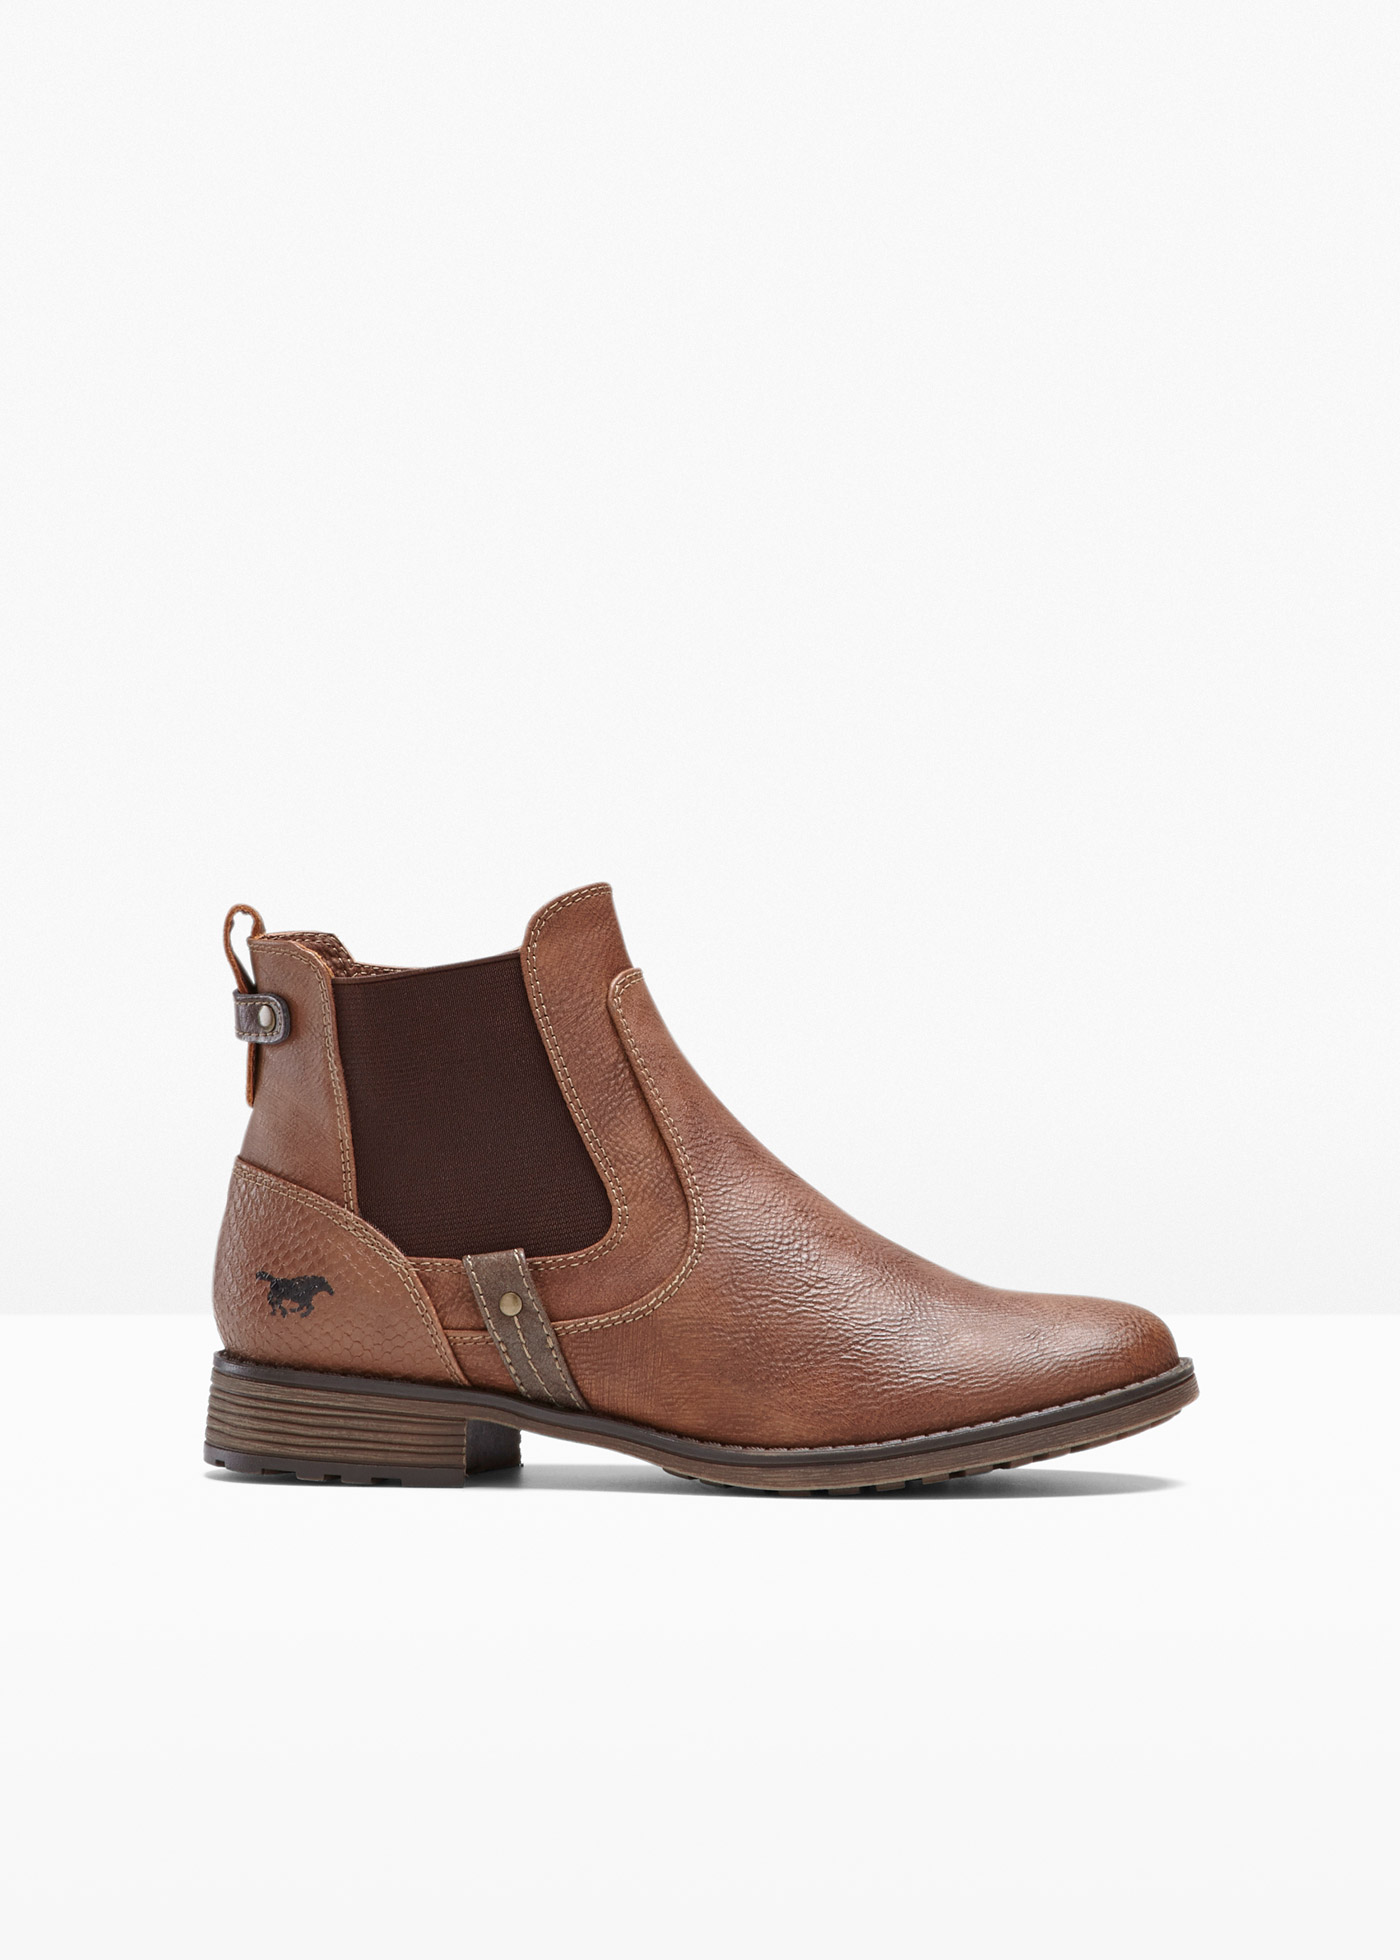 Image of Mustang Chelsea Boot